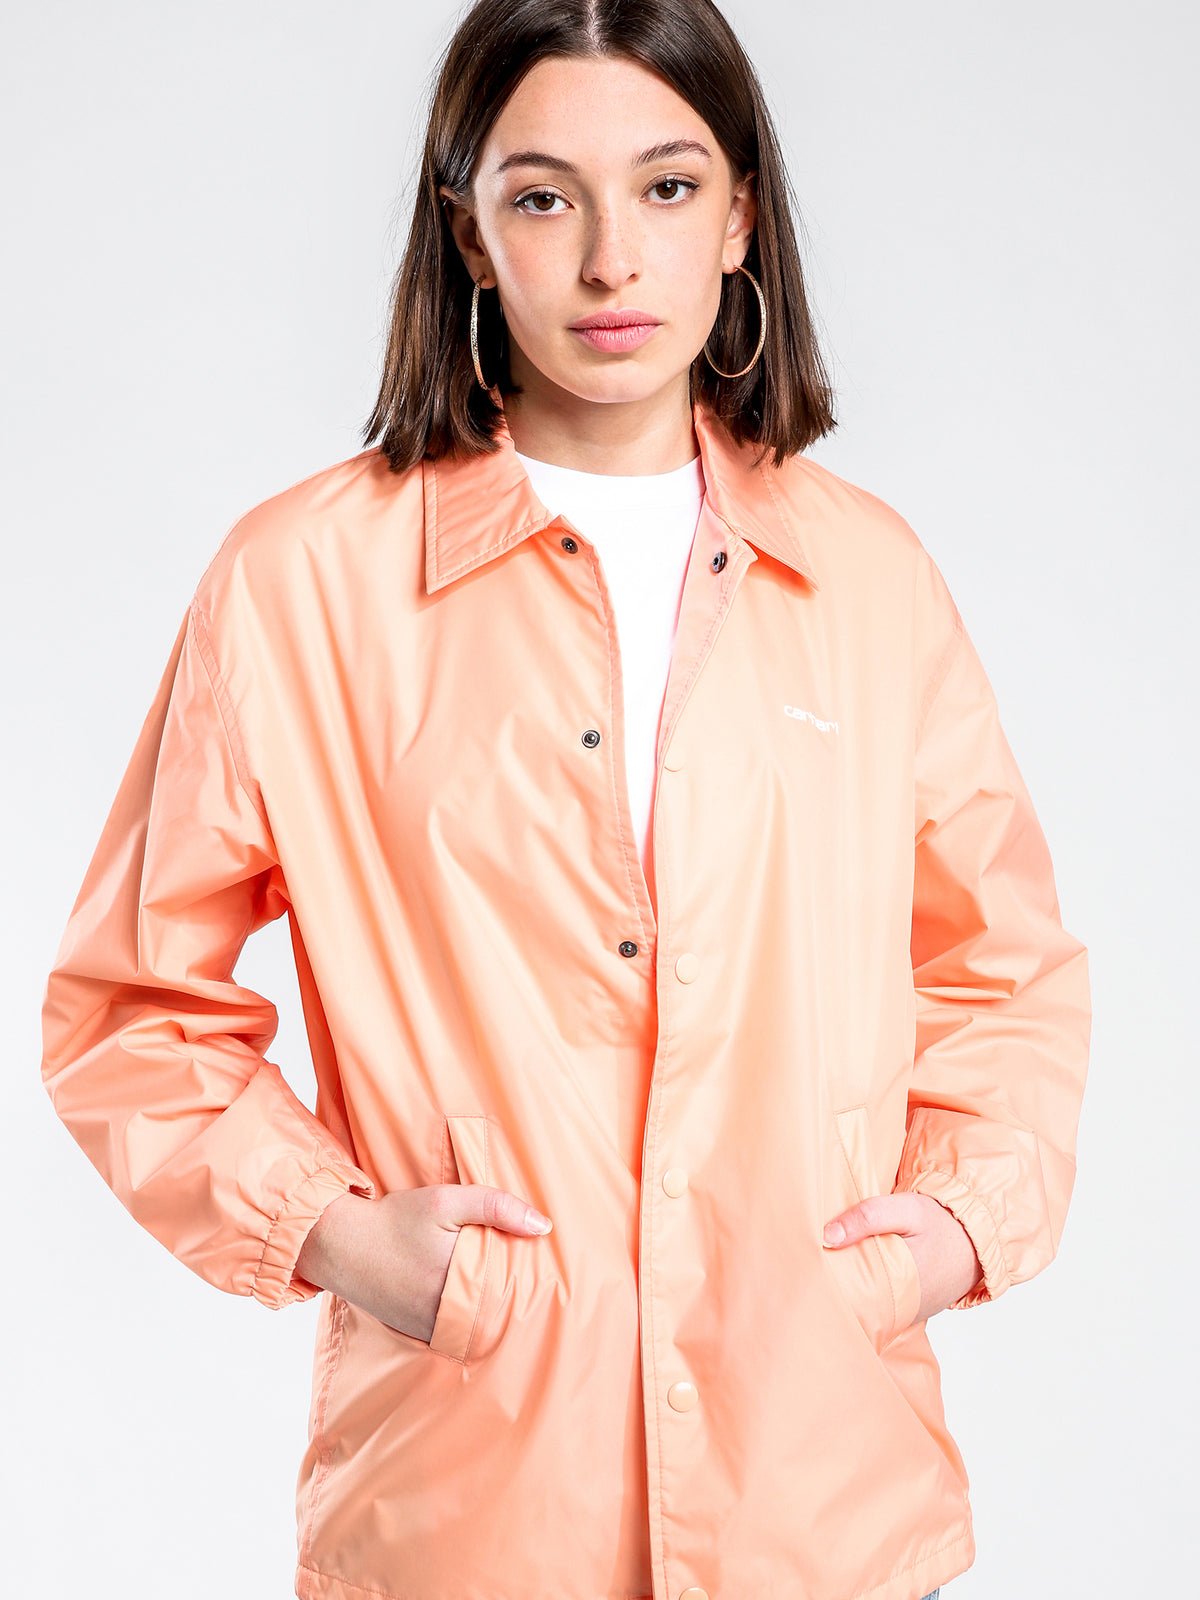 Script Coach Jacket in Peach